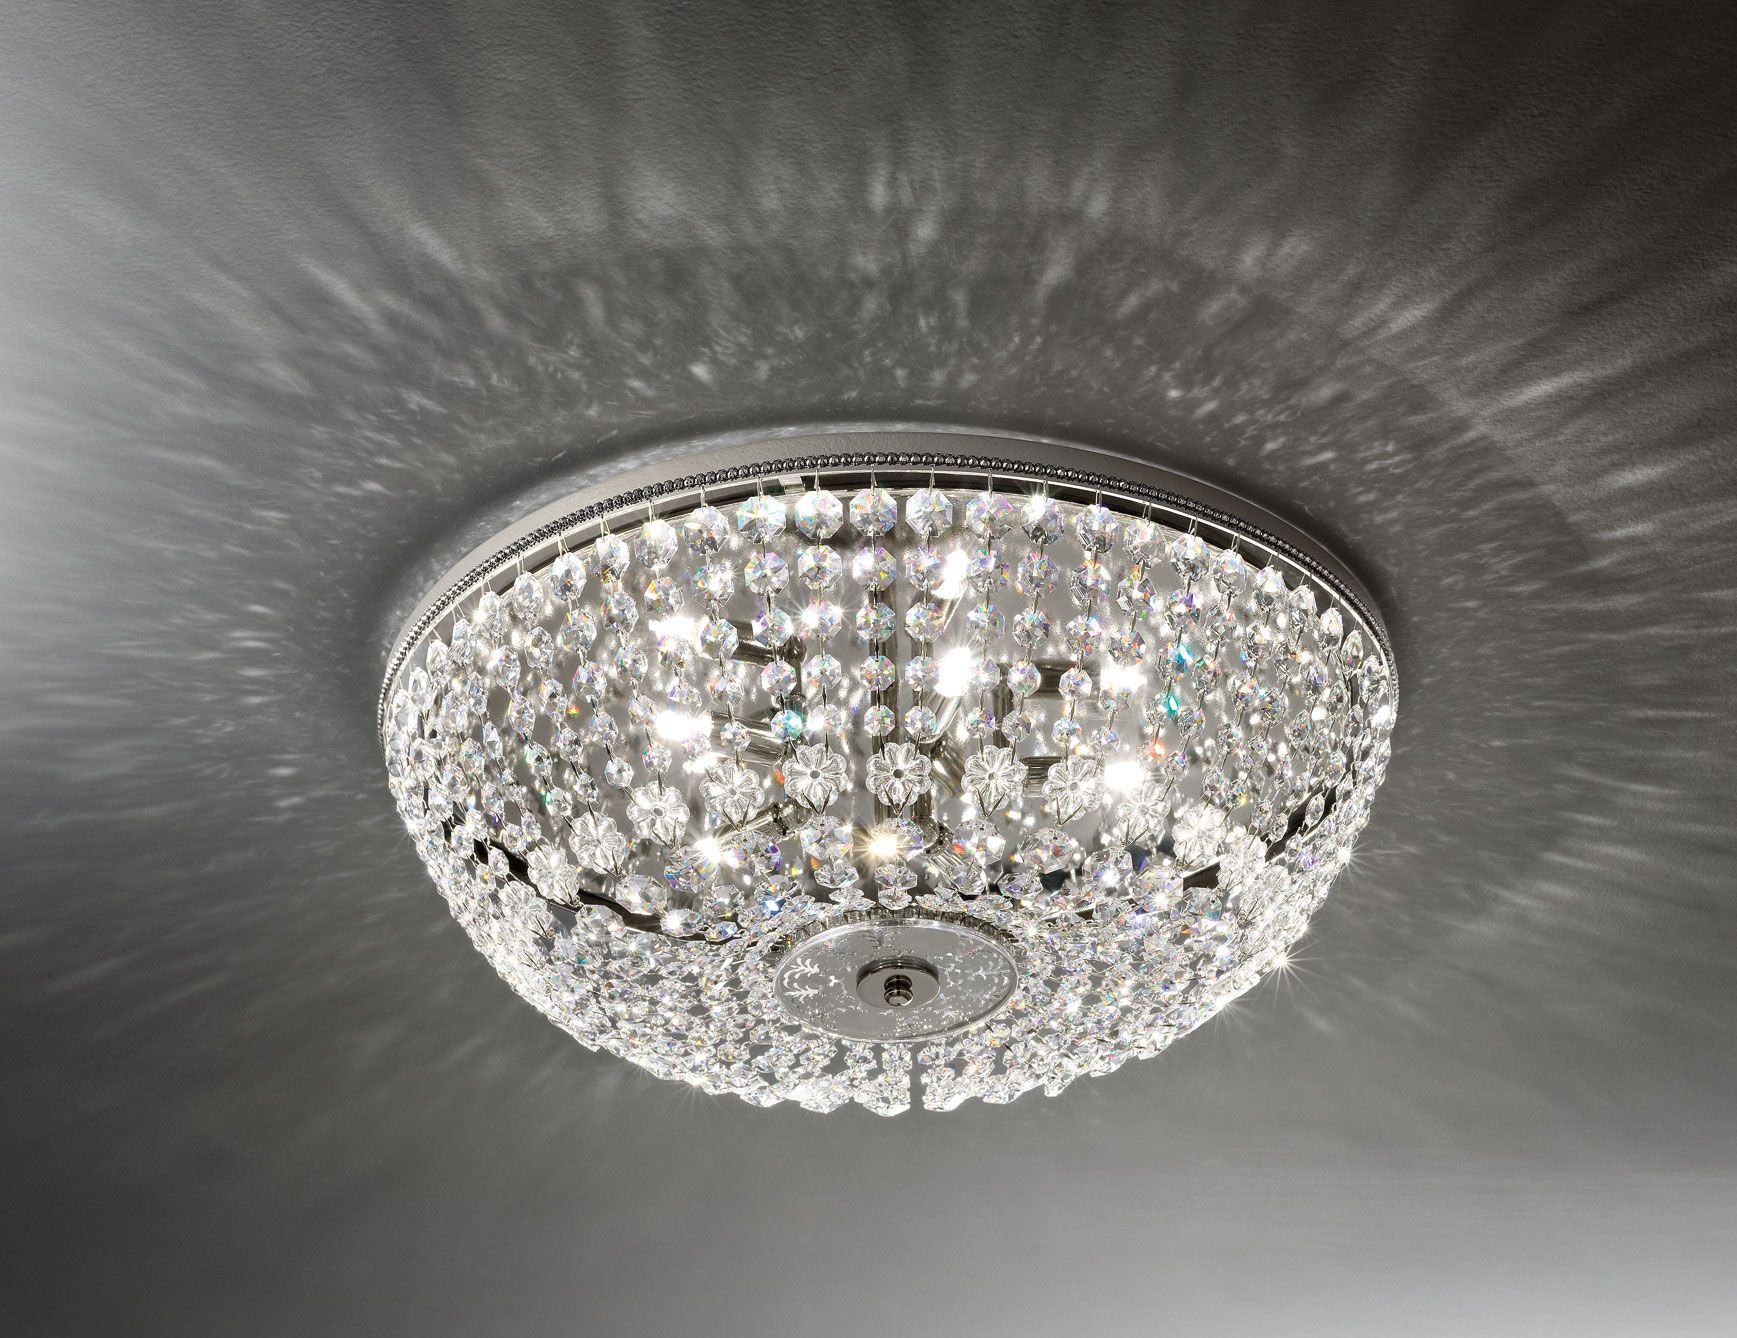 Swarovski Crystal Bathroom Lighting Fixtures From All Modern Will Create A Prestige Look Of Your Home